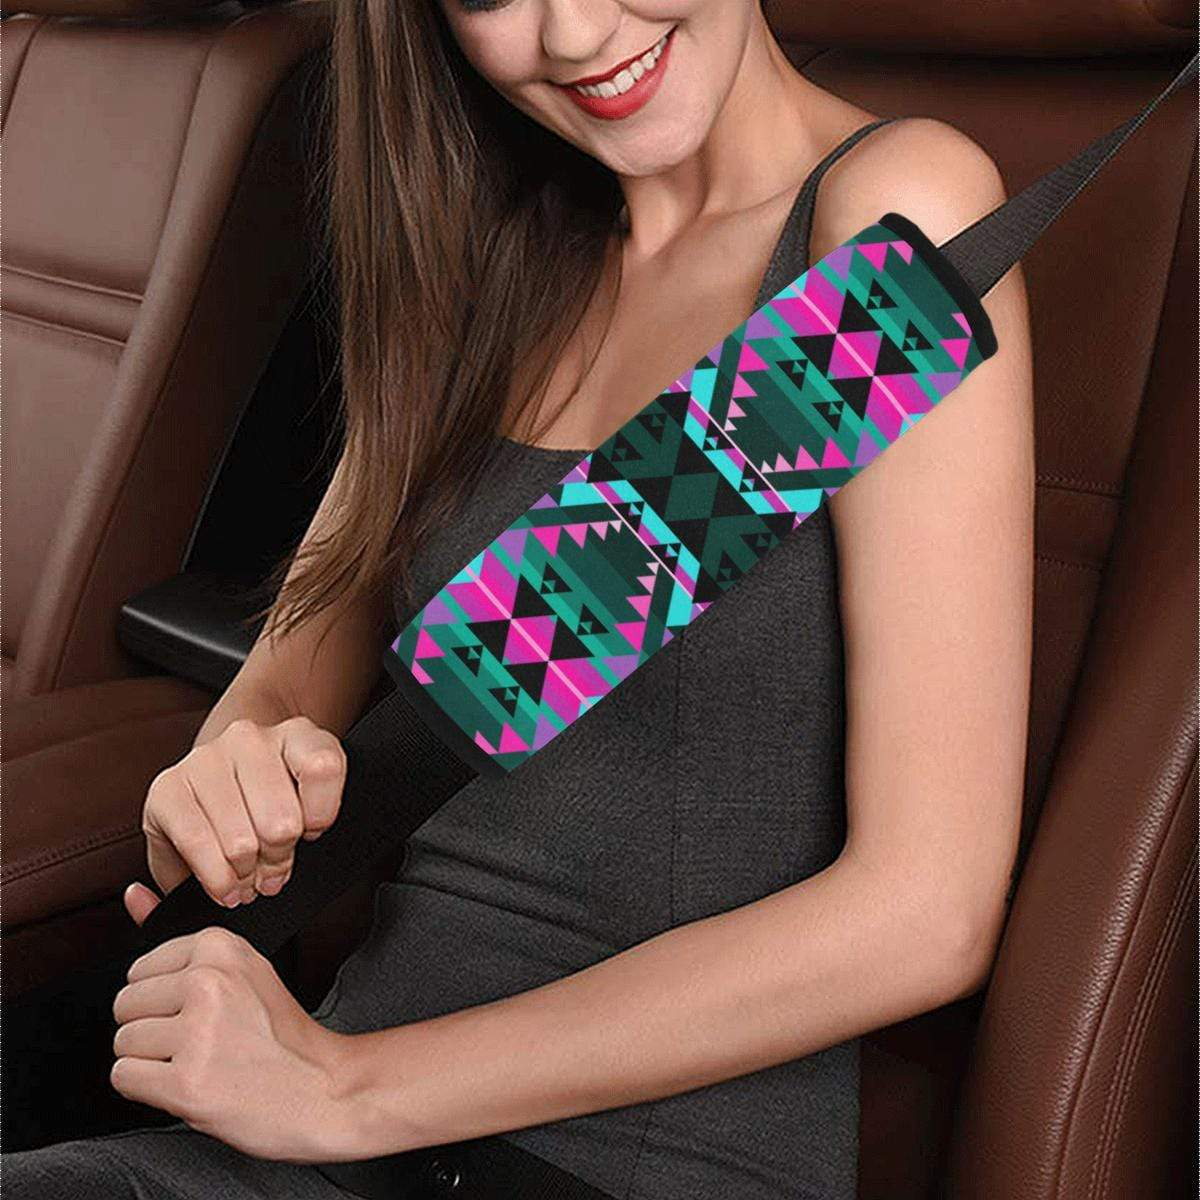 Writing on Stone Sunset Car Seat Belt Cover 7''x12.6'' Car Seat Belt Cover 7''x12.6'' e-joyer